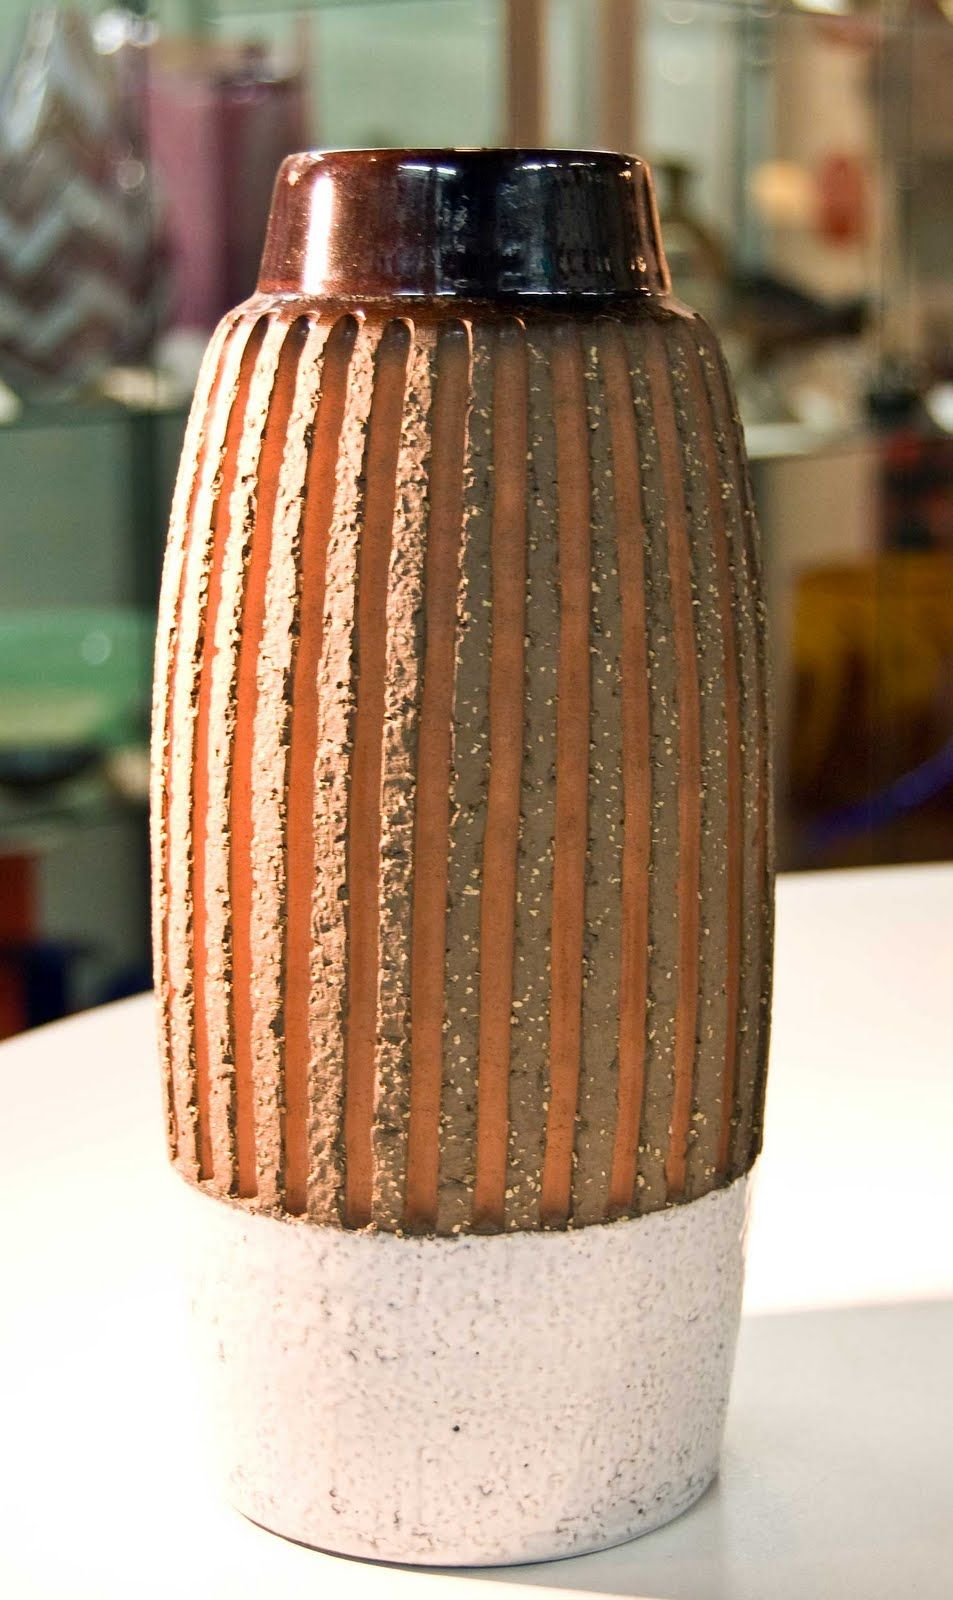 Retro Pottery Net: Circa - C20 Ceramics and Glass, Sydney